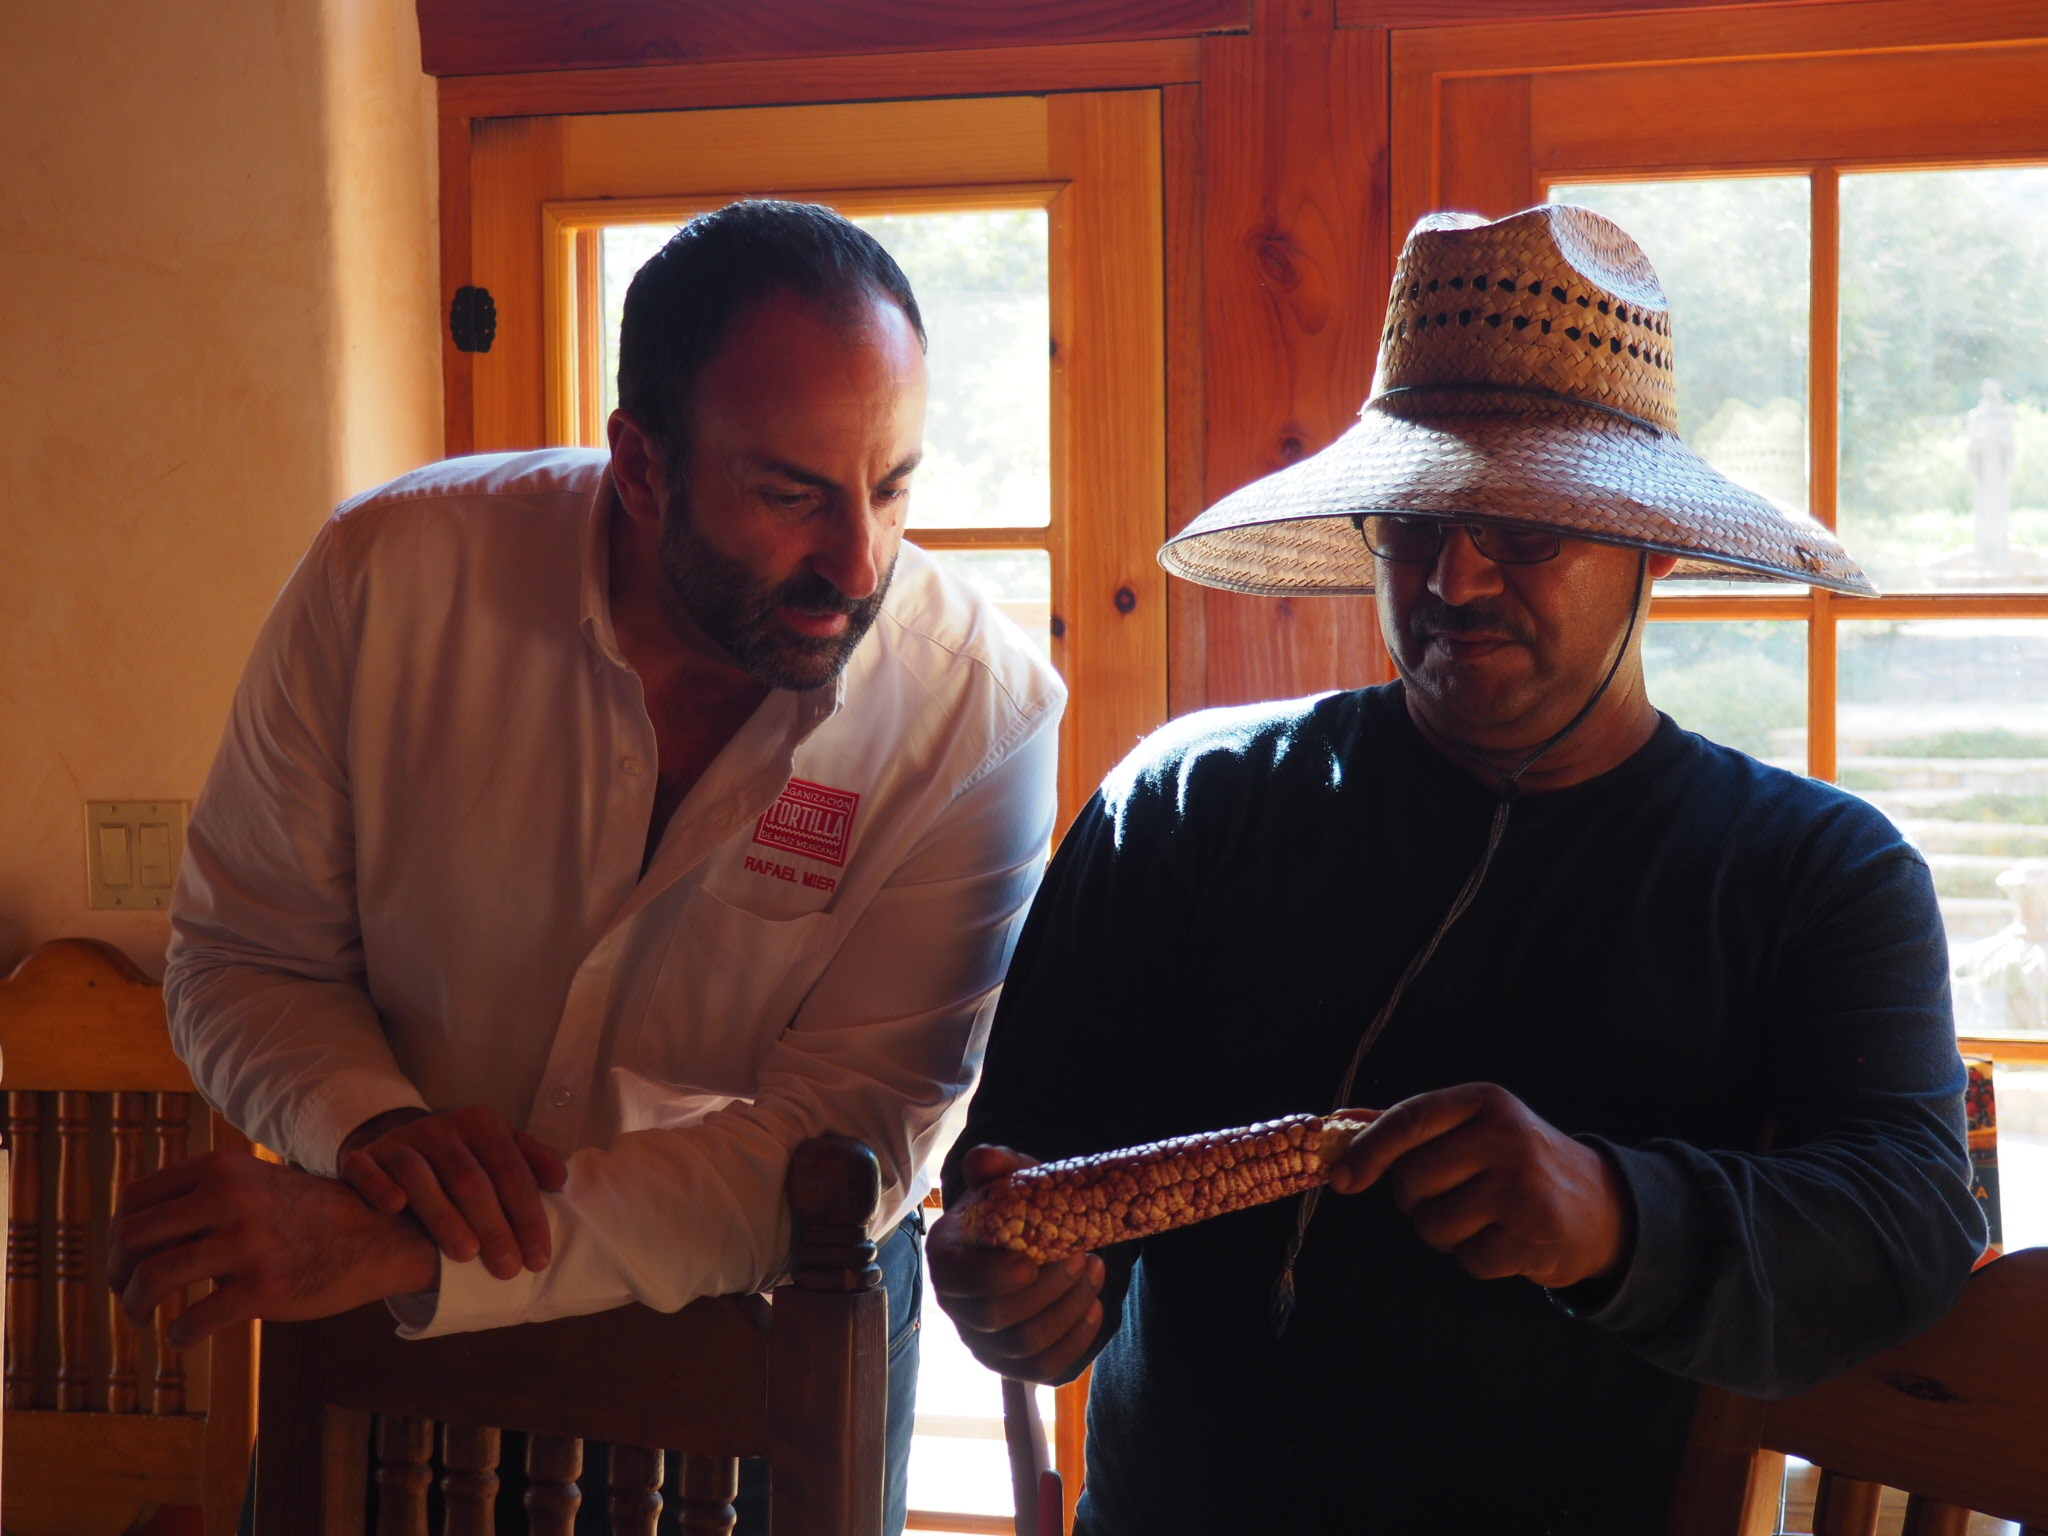 Rafael Mier showing an ear of corn to Salvador, the head farmer at Rancho la Puerta in Tecate, Mexico. (Photo by Jackie Bryant)